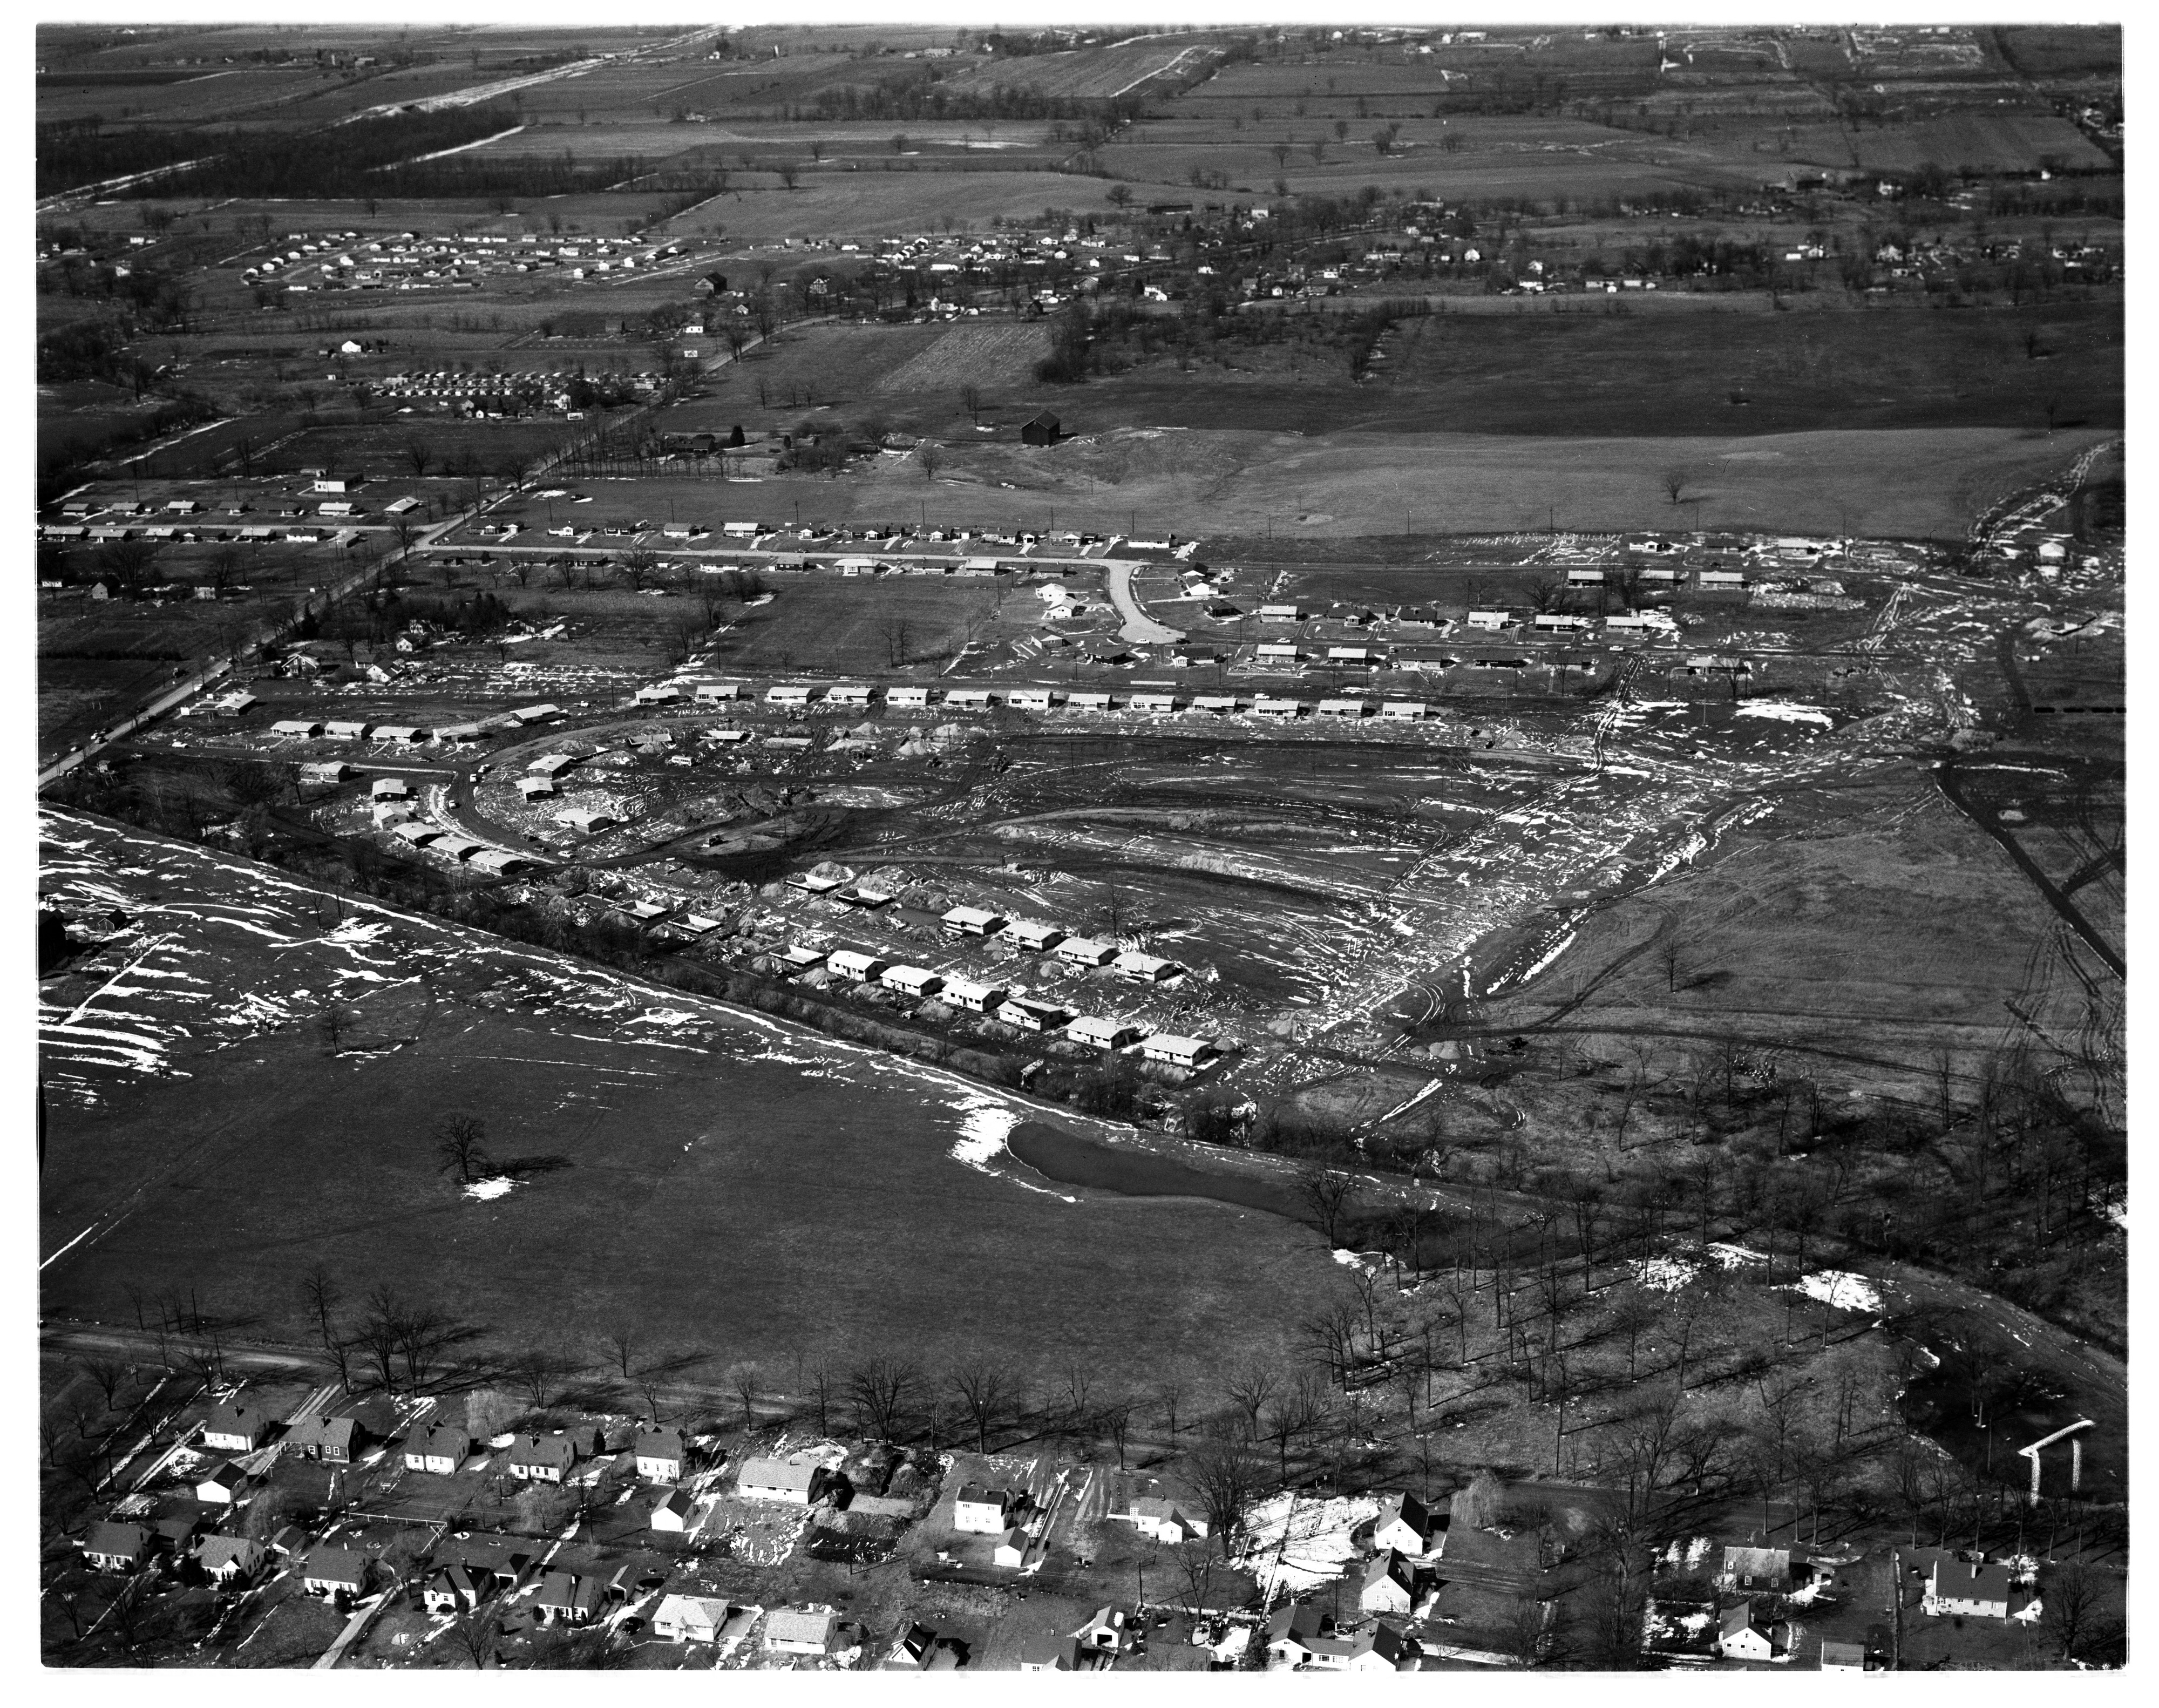 Aerial Photograph of Kensington Farms Subdivision, July 1956 image